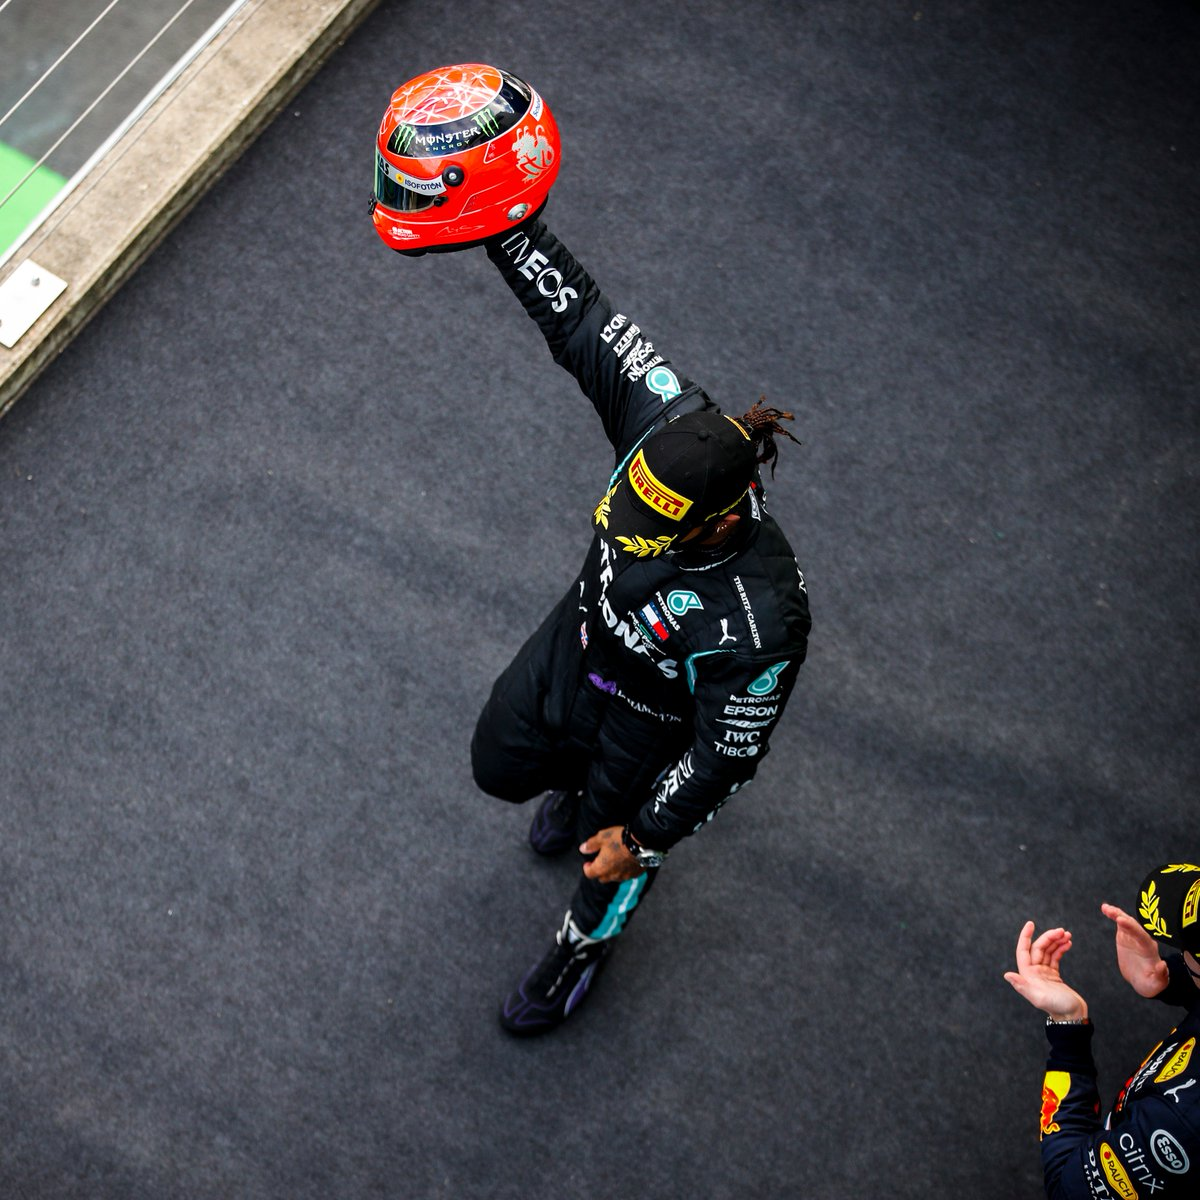 """💬 """"I'm thinking of Michael today, I will forever have the utmost admiration and respect for you. It's truly an honour to be mentioned in the same sentence as you.""""  ❤️ @LewisHamilton last Sunday https://t.co/ETtkjzwaXY"""